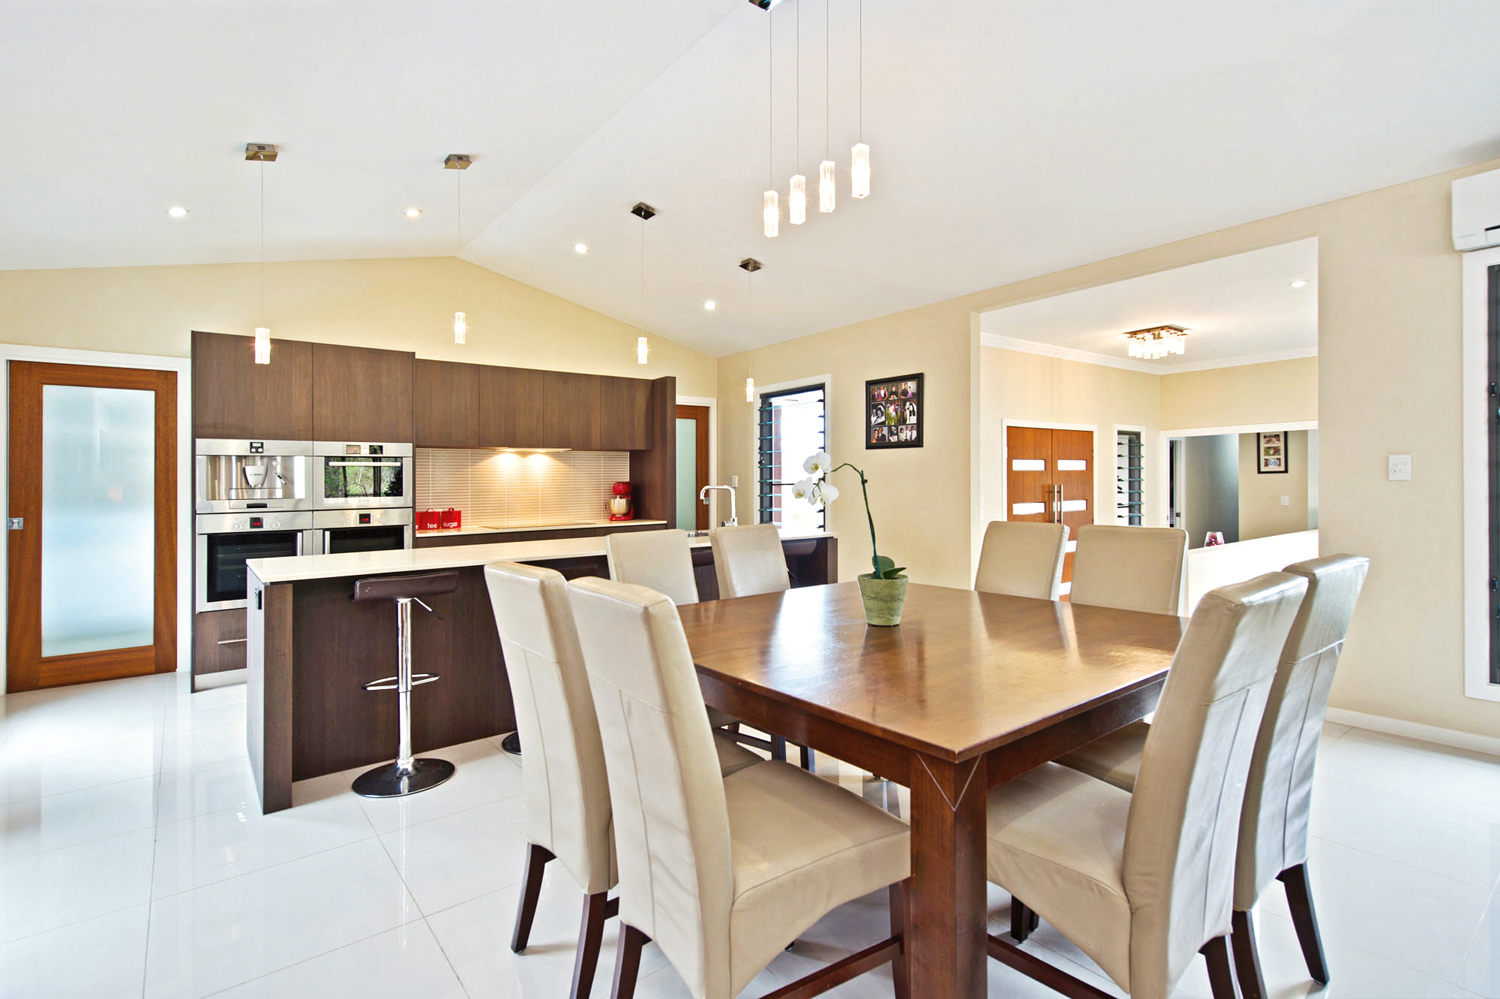 Https Www Completehome Com Au New Homes Flexible And Functional Home Design Html